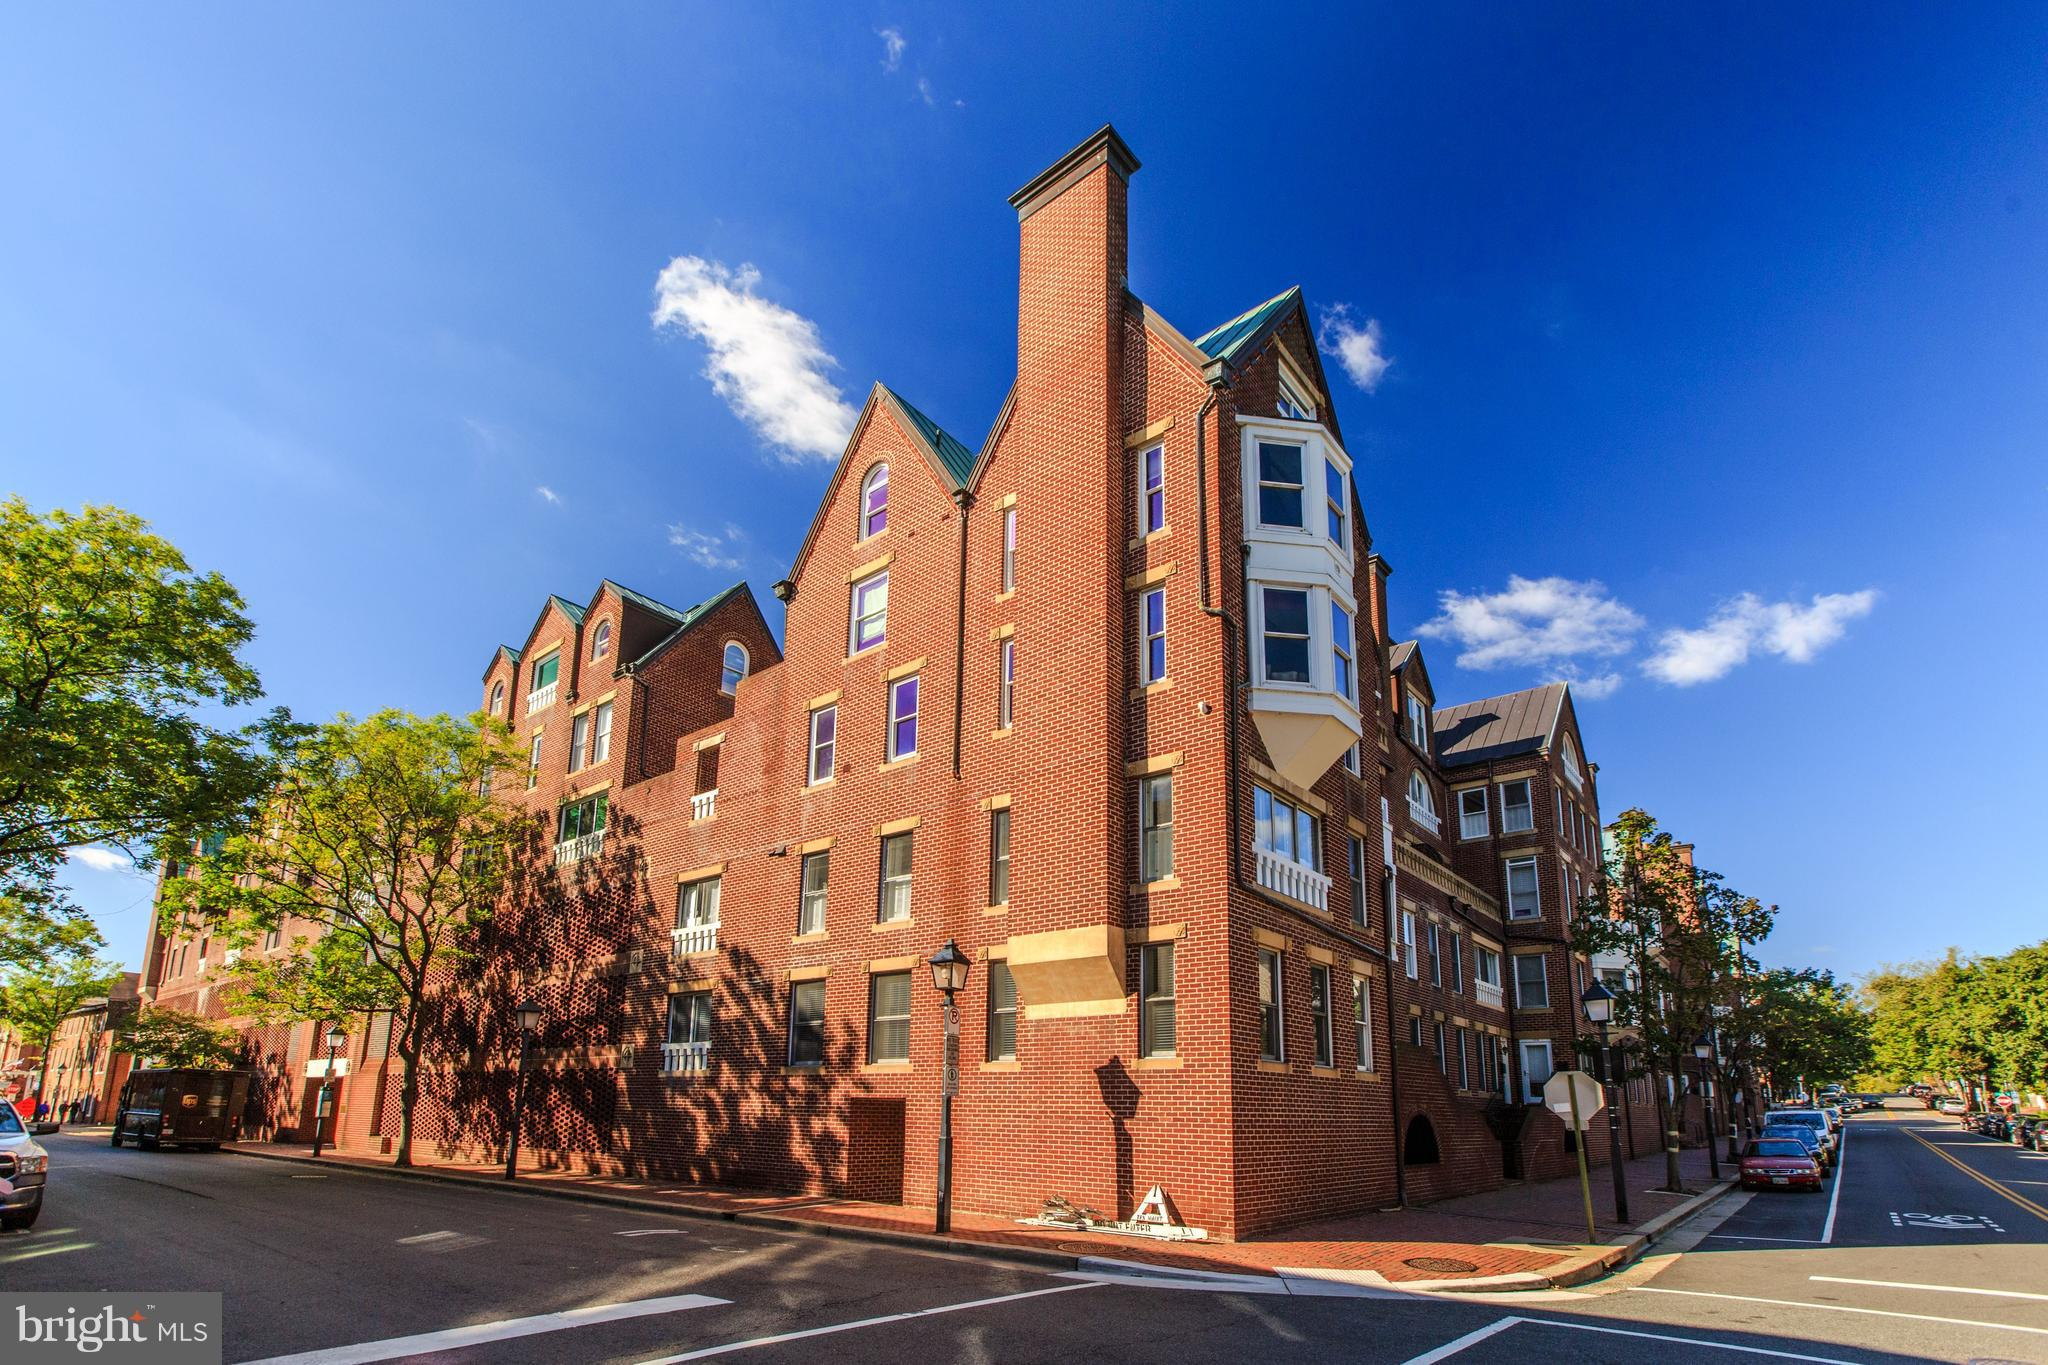 Located in Alexandria's Historic Torpedo Factory w/ views of the Potomac and Capitol! Renovated PH w/ Cherry hw floors, SS appliances, integrated Keurig in refrigerator. Living Rm & Dining Rm w/ Wet Bar & fireplace. Private Master Bedroom w/ walk-in closet and Bath. Walking distance to shops, restaurants, parks & more!